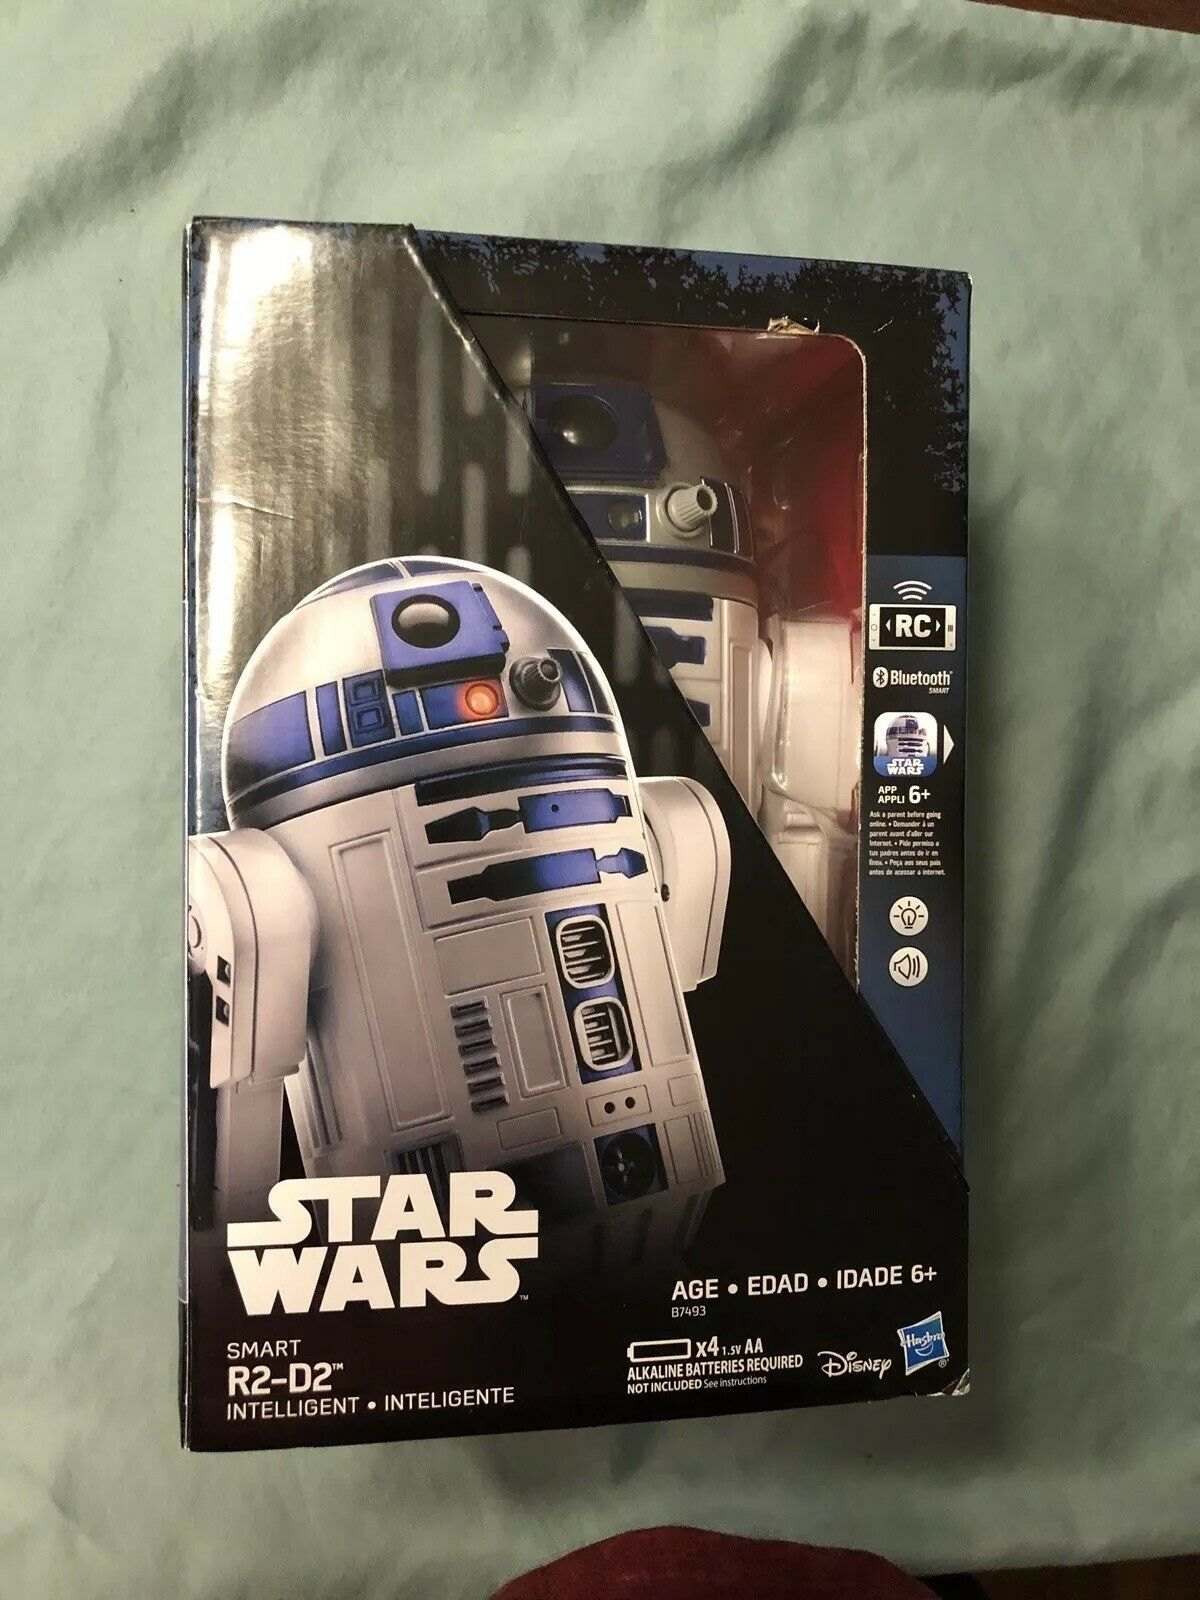 Hasbro Star Wars Smart R2-D2, App Enabled RC Robot Droid blueetooth intelligent